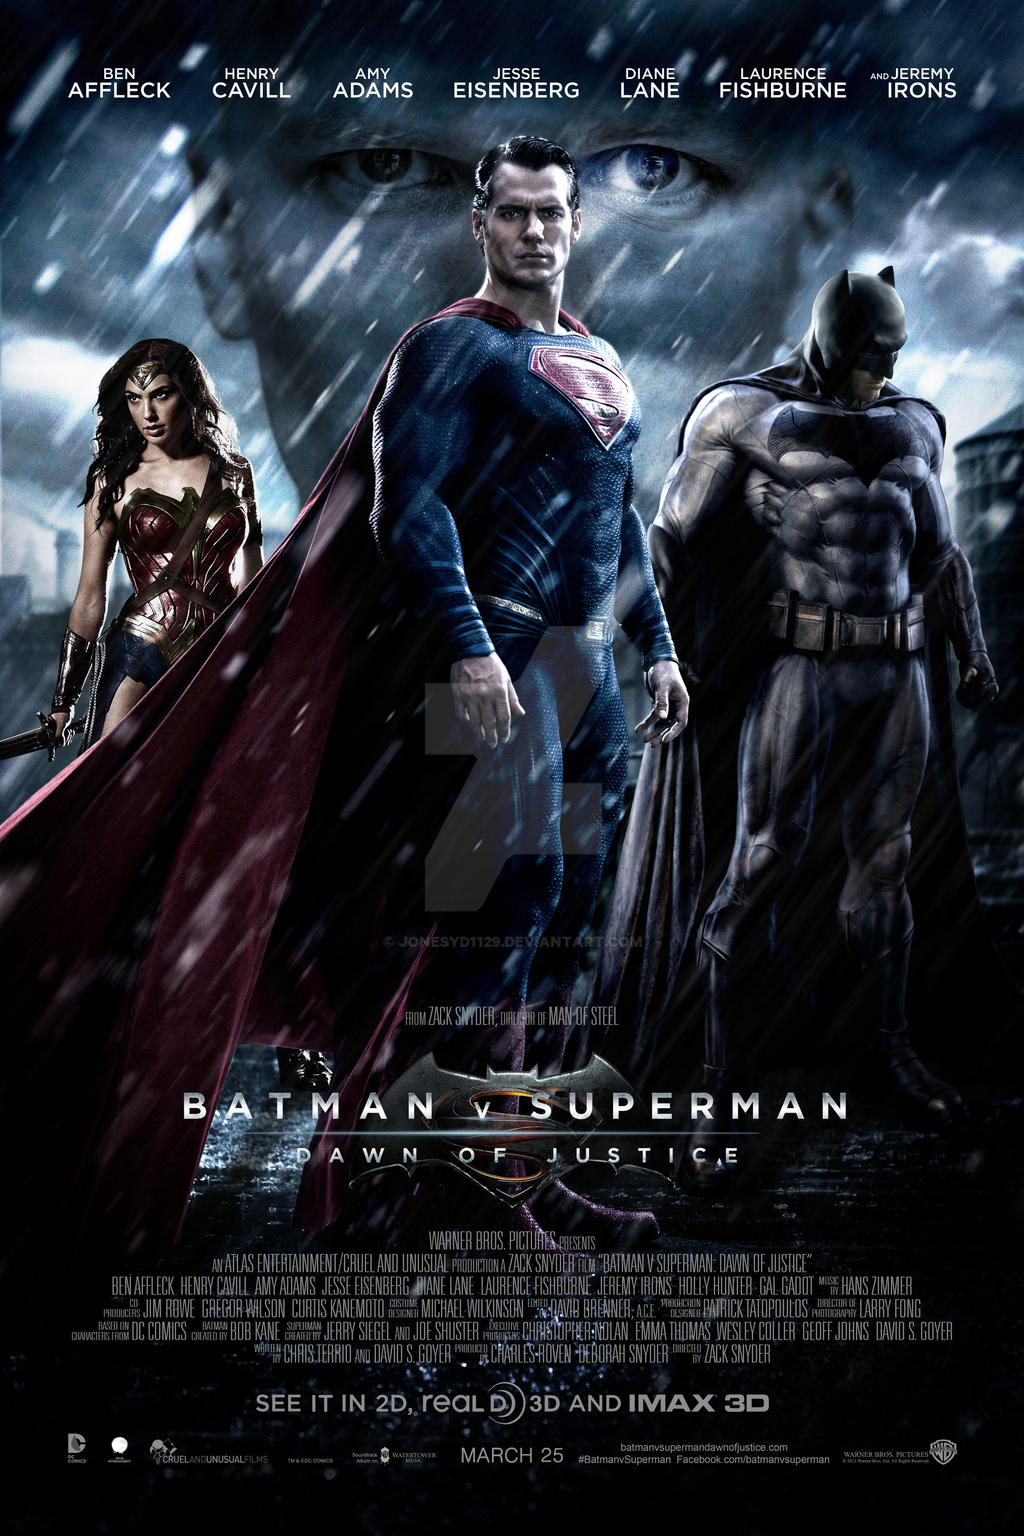 Batman Vs Superman (2016) Movie Download / Online In Urdu